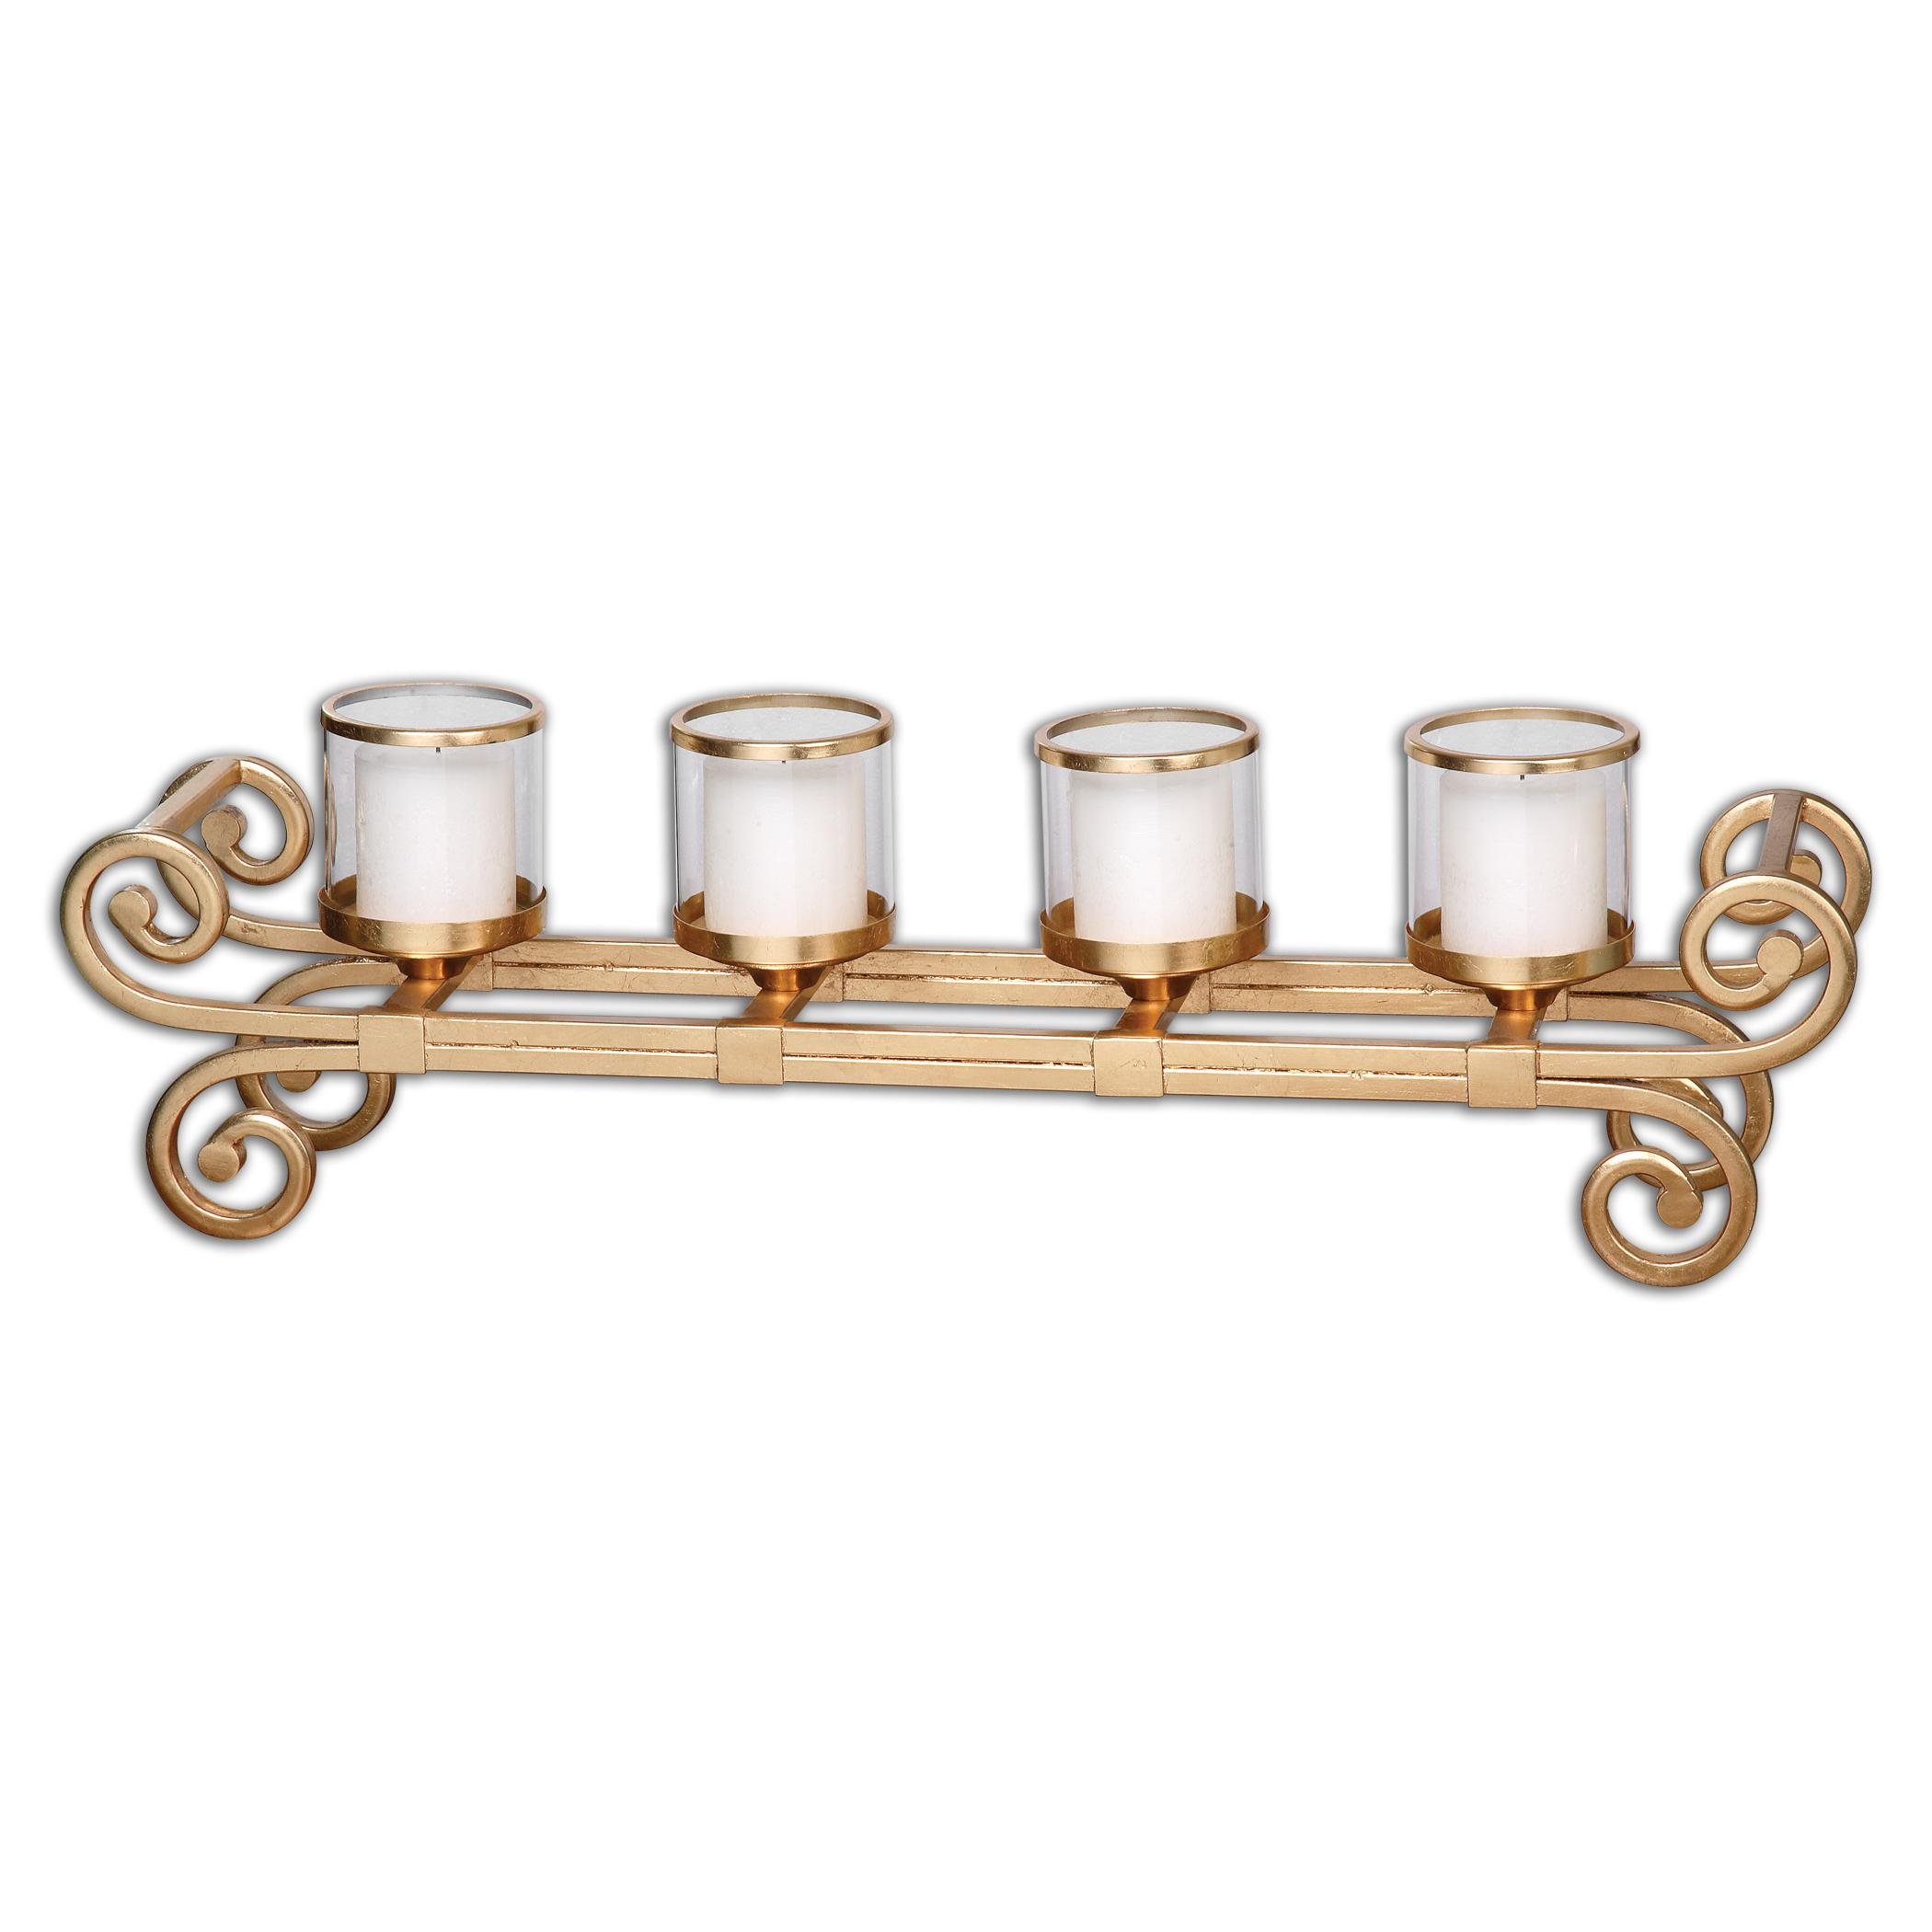 Uttermost Accessories Meron Gold Candelabra - Item Number: 19906